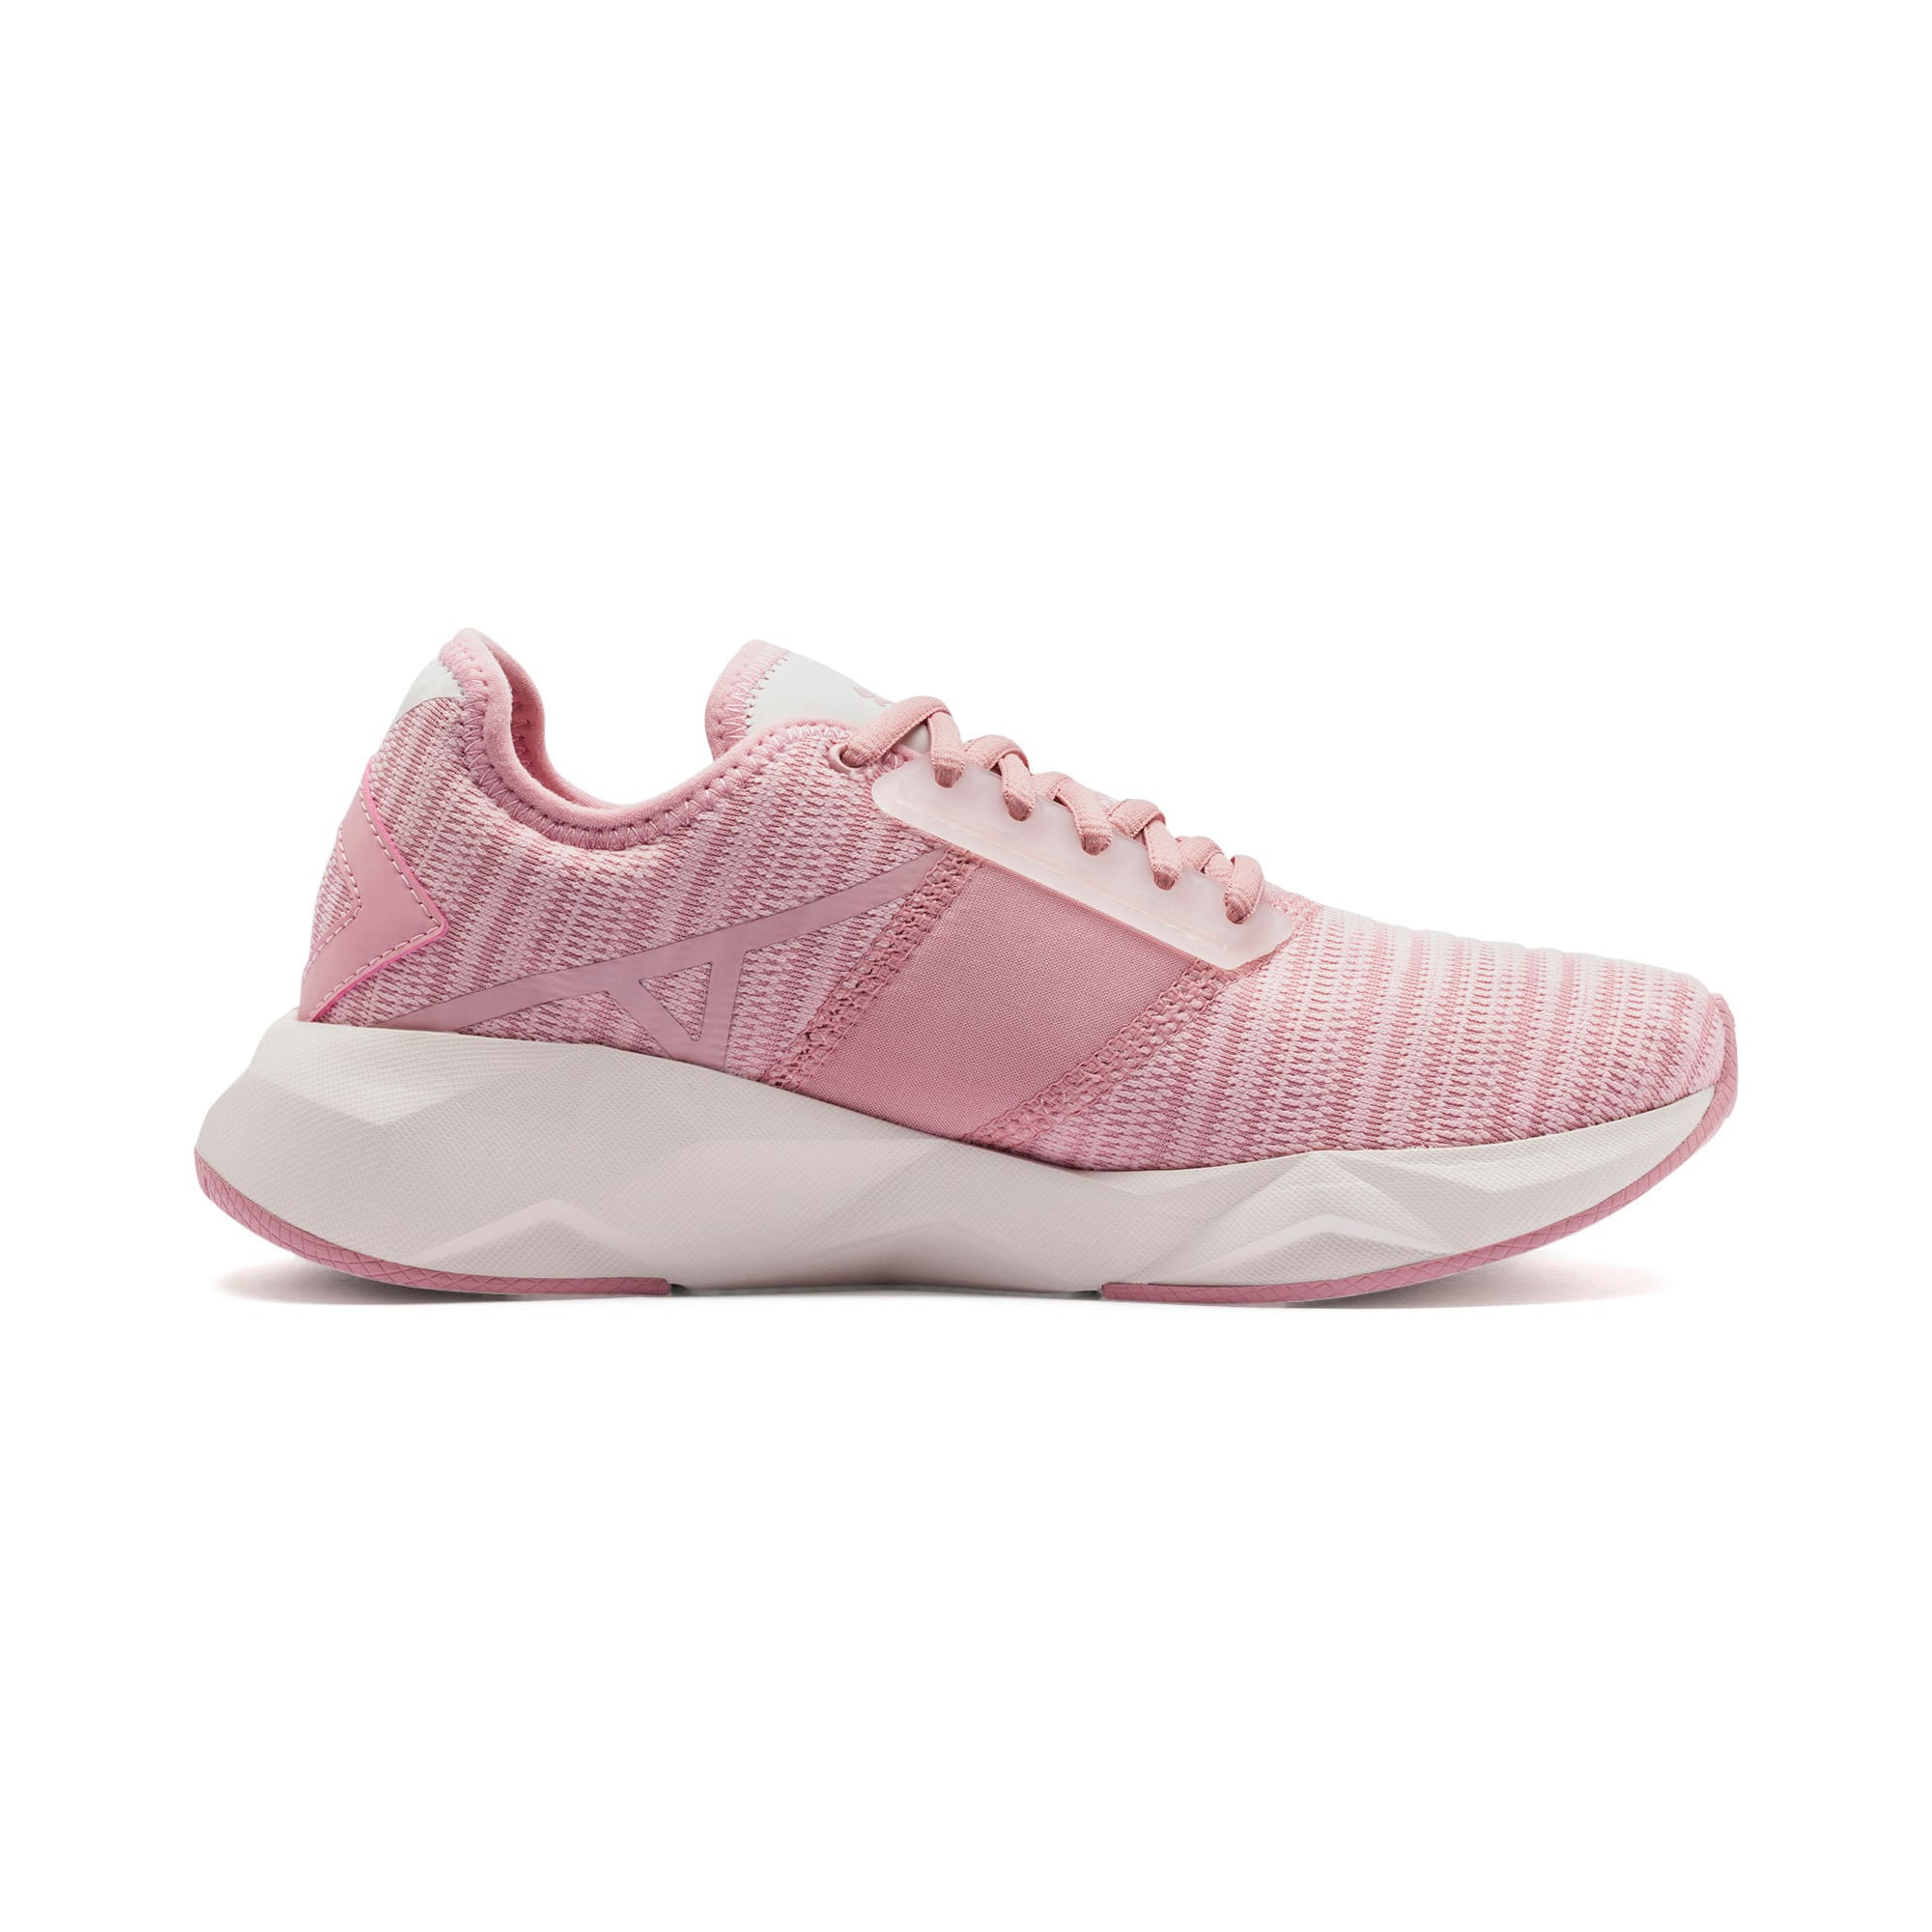 Thumbnail 7 of CELL Plasmic Women's Trainers, Bridal Rose-Pastel Parchment, medium-IND